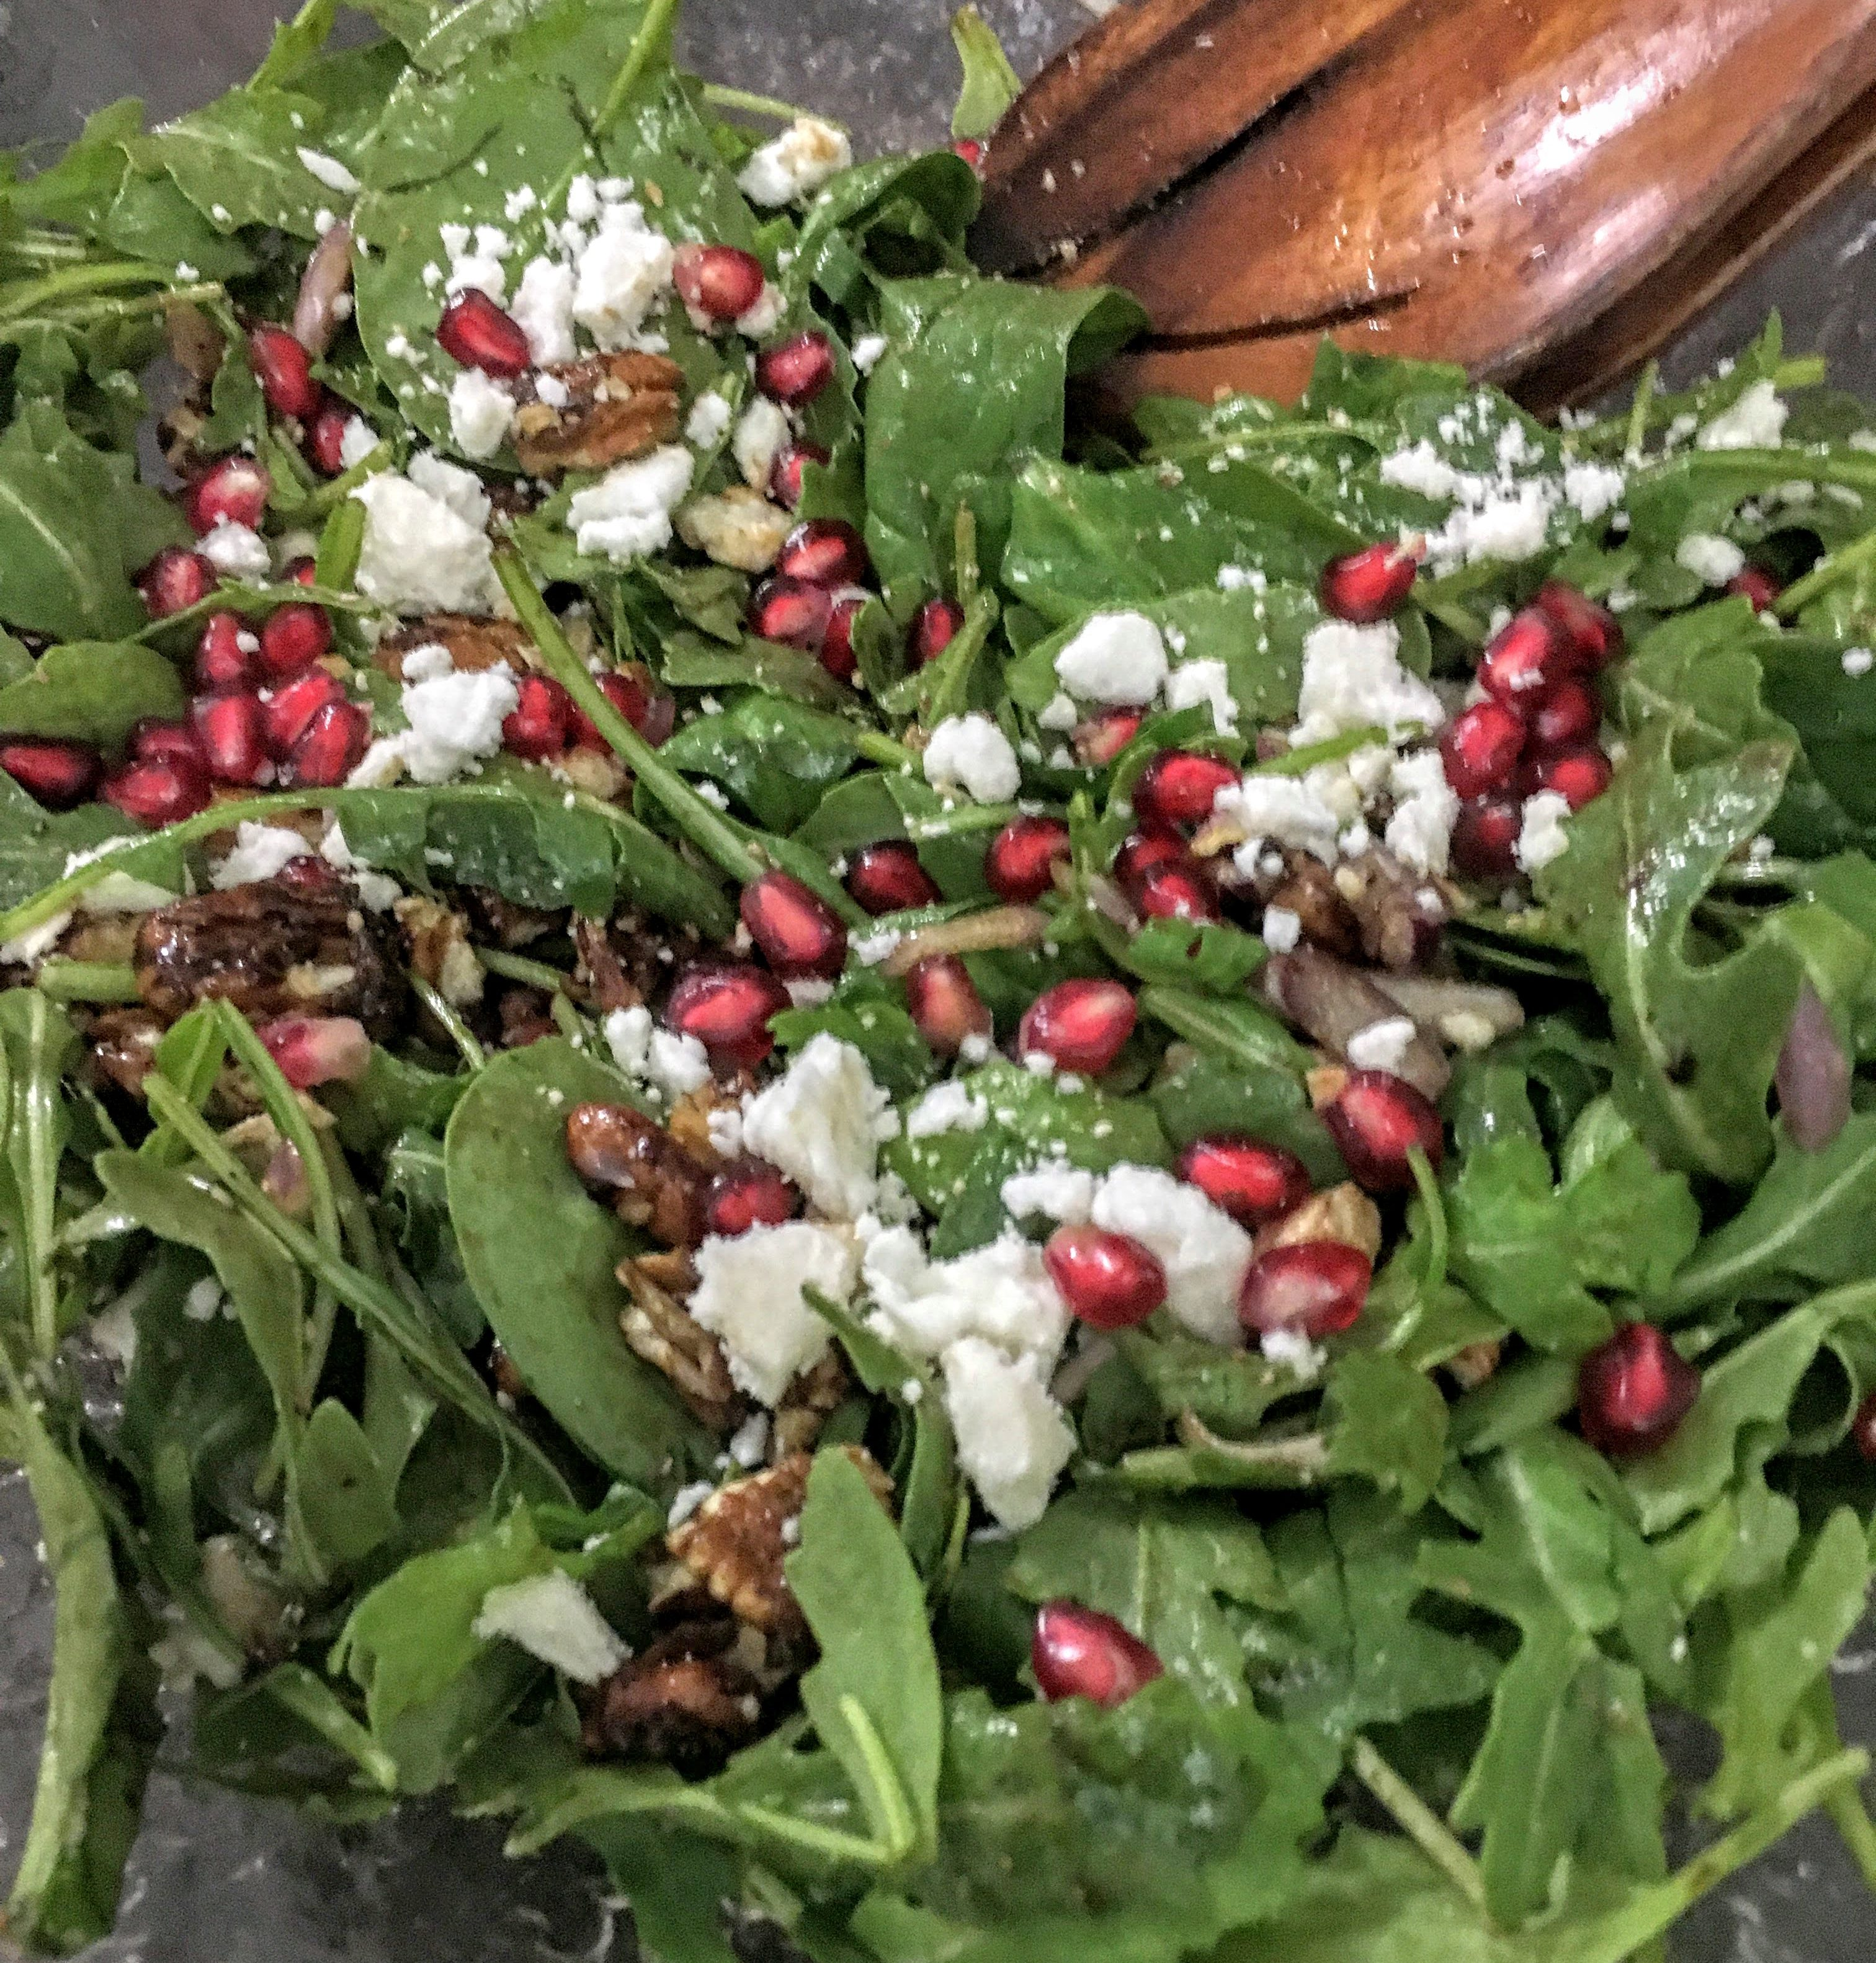 Pomegranate Spinach and Arugula Salad with Candied Pecans and Feta Cheese